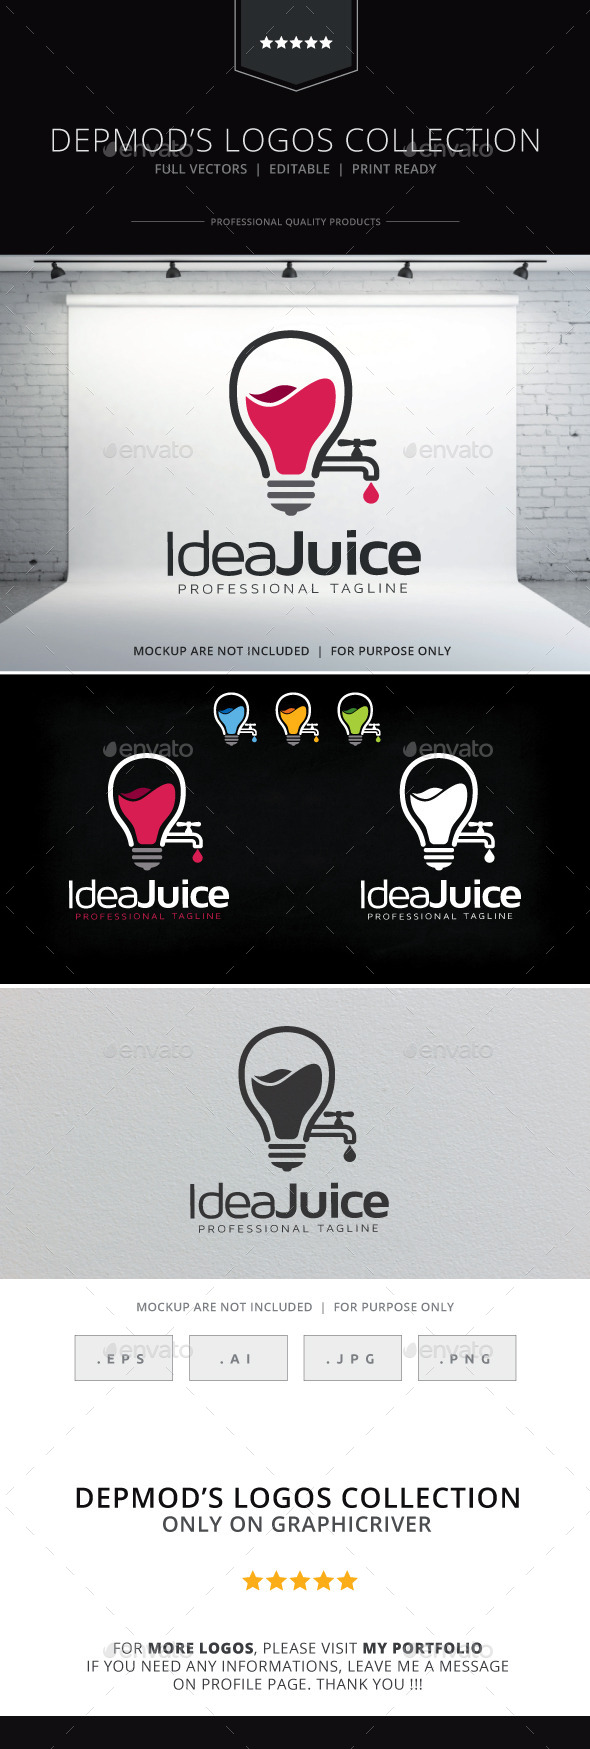 Idea Juice Logo